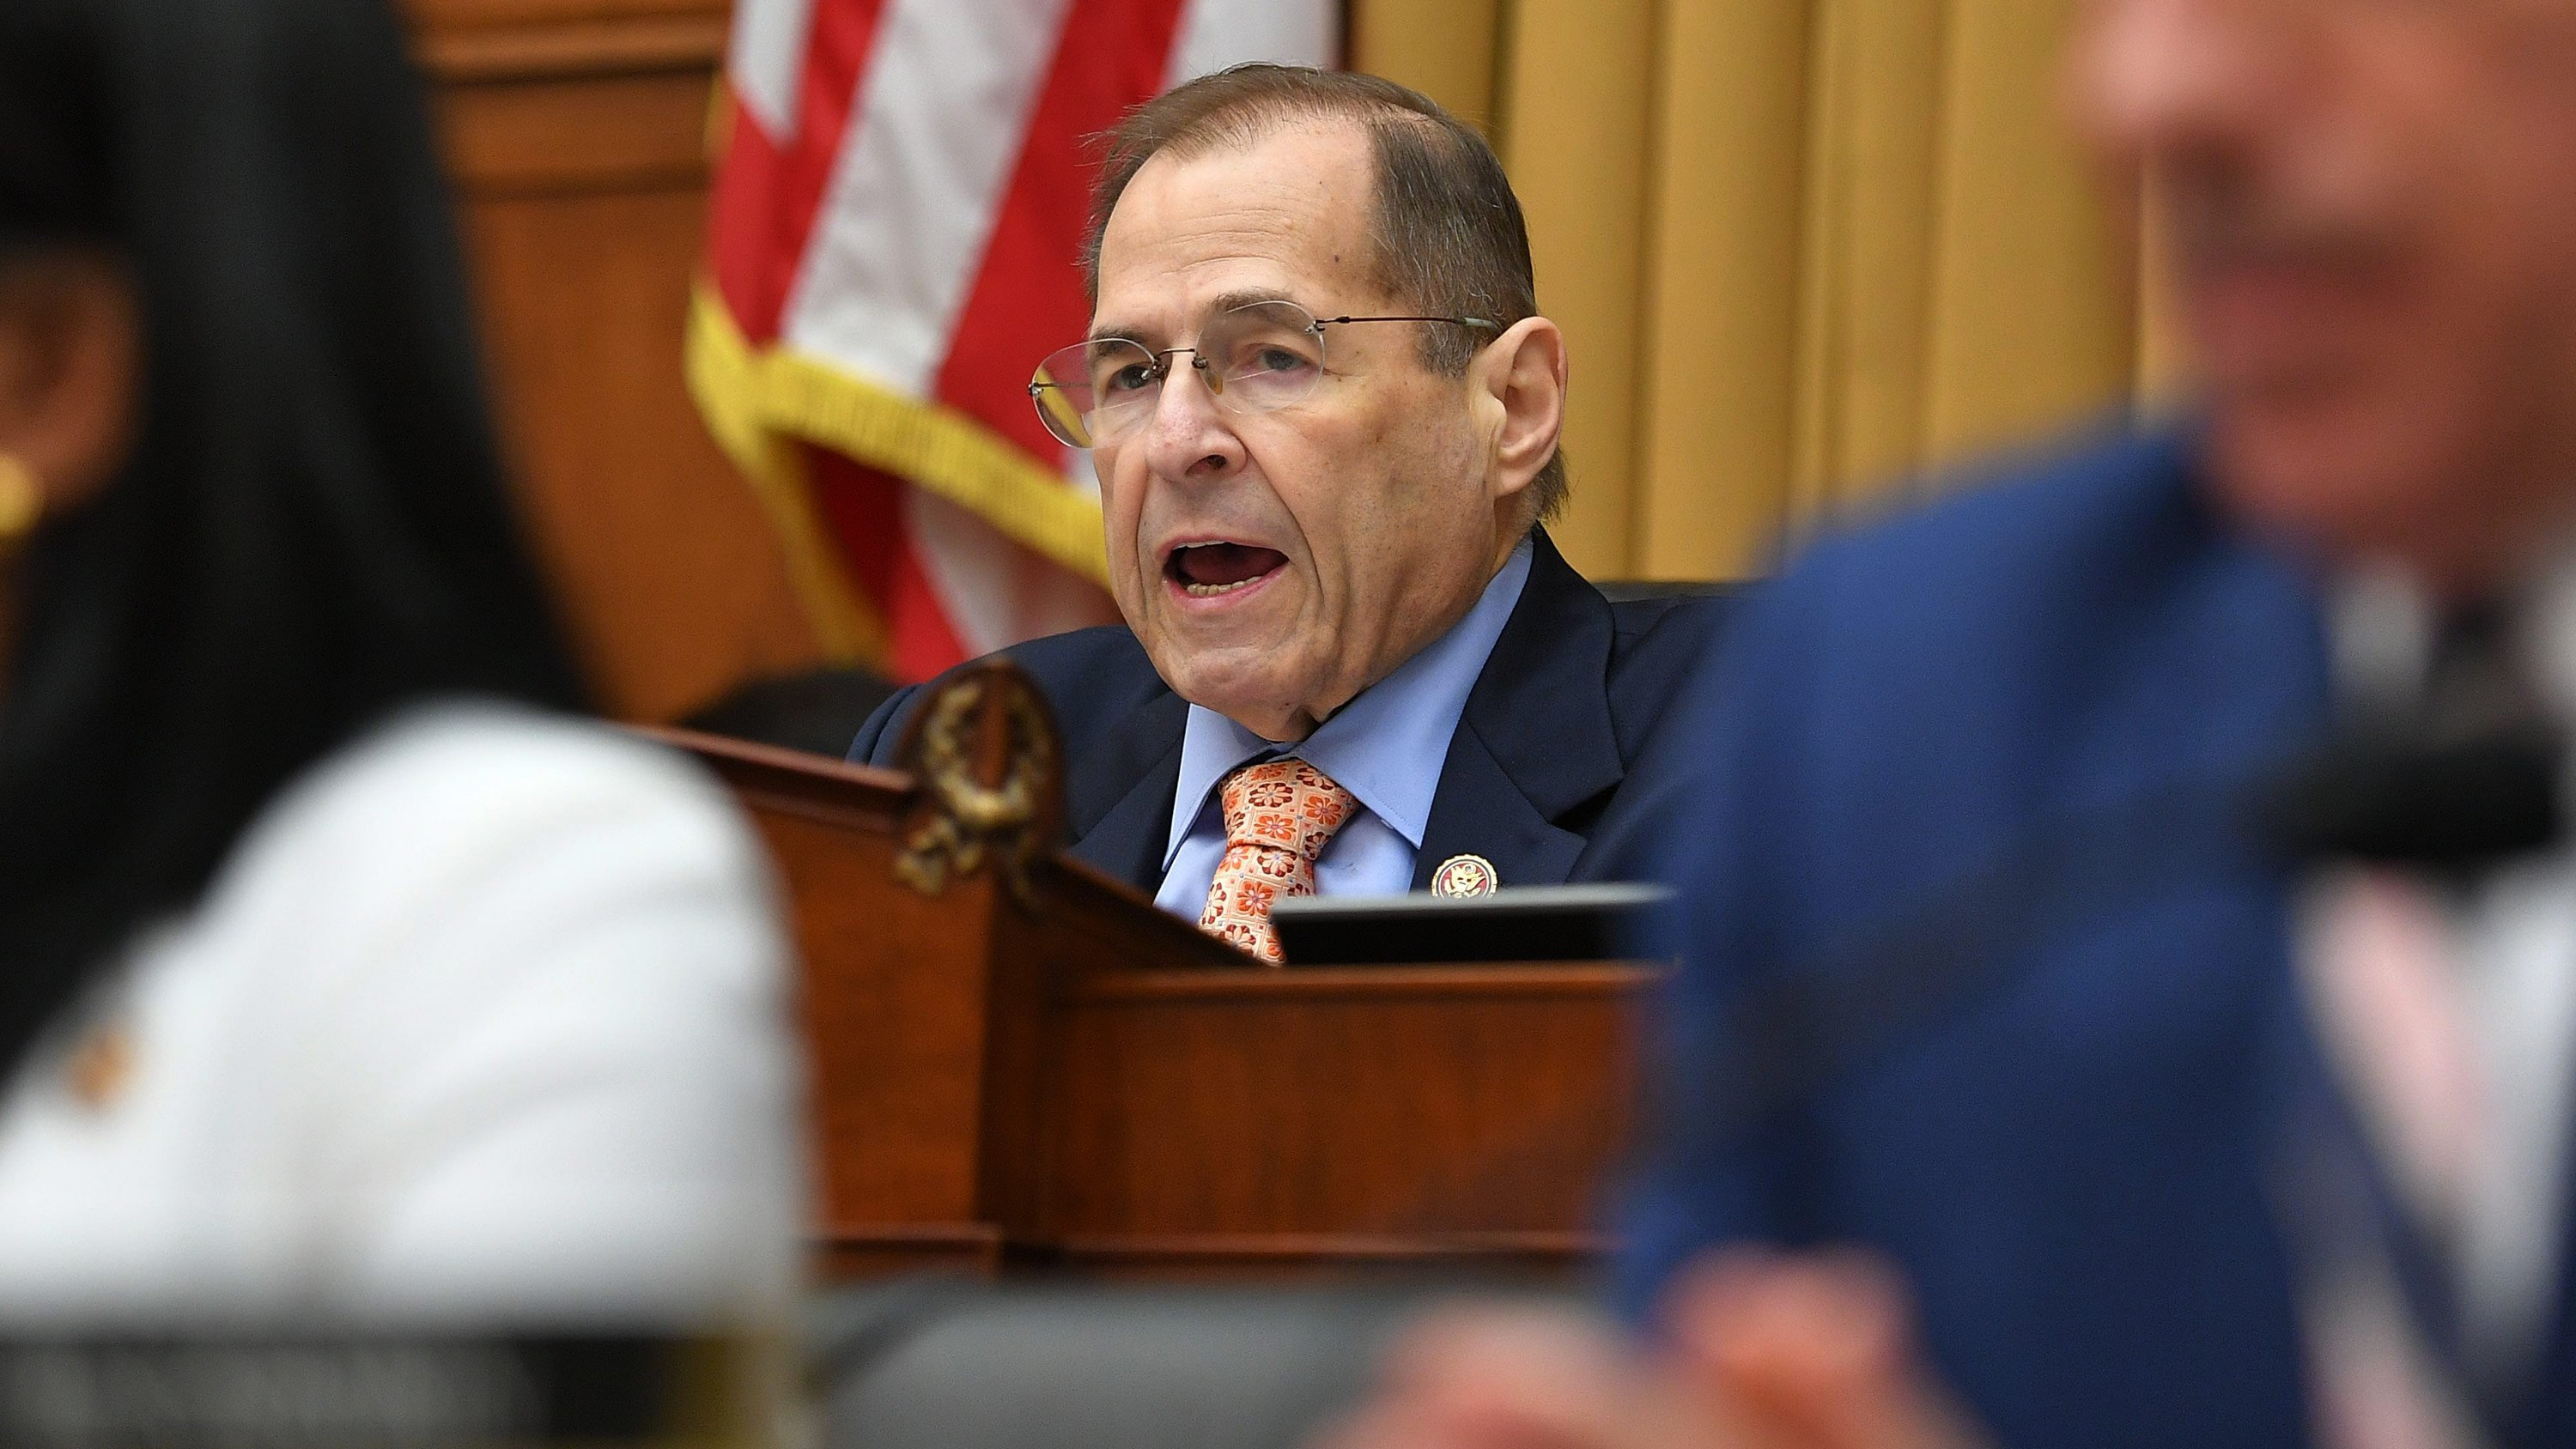 House approves resolution opposing Israel boycott movement in divisive vote